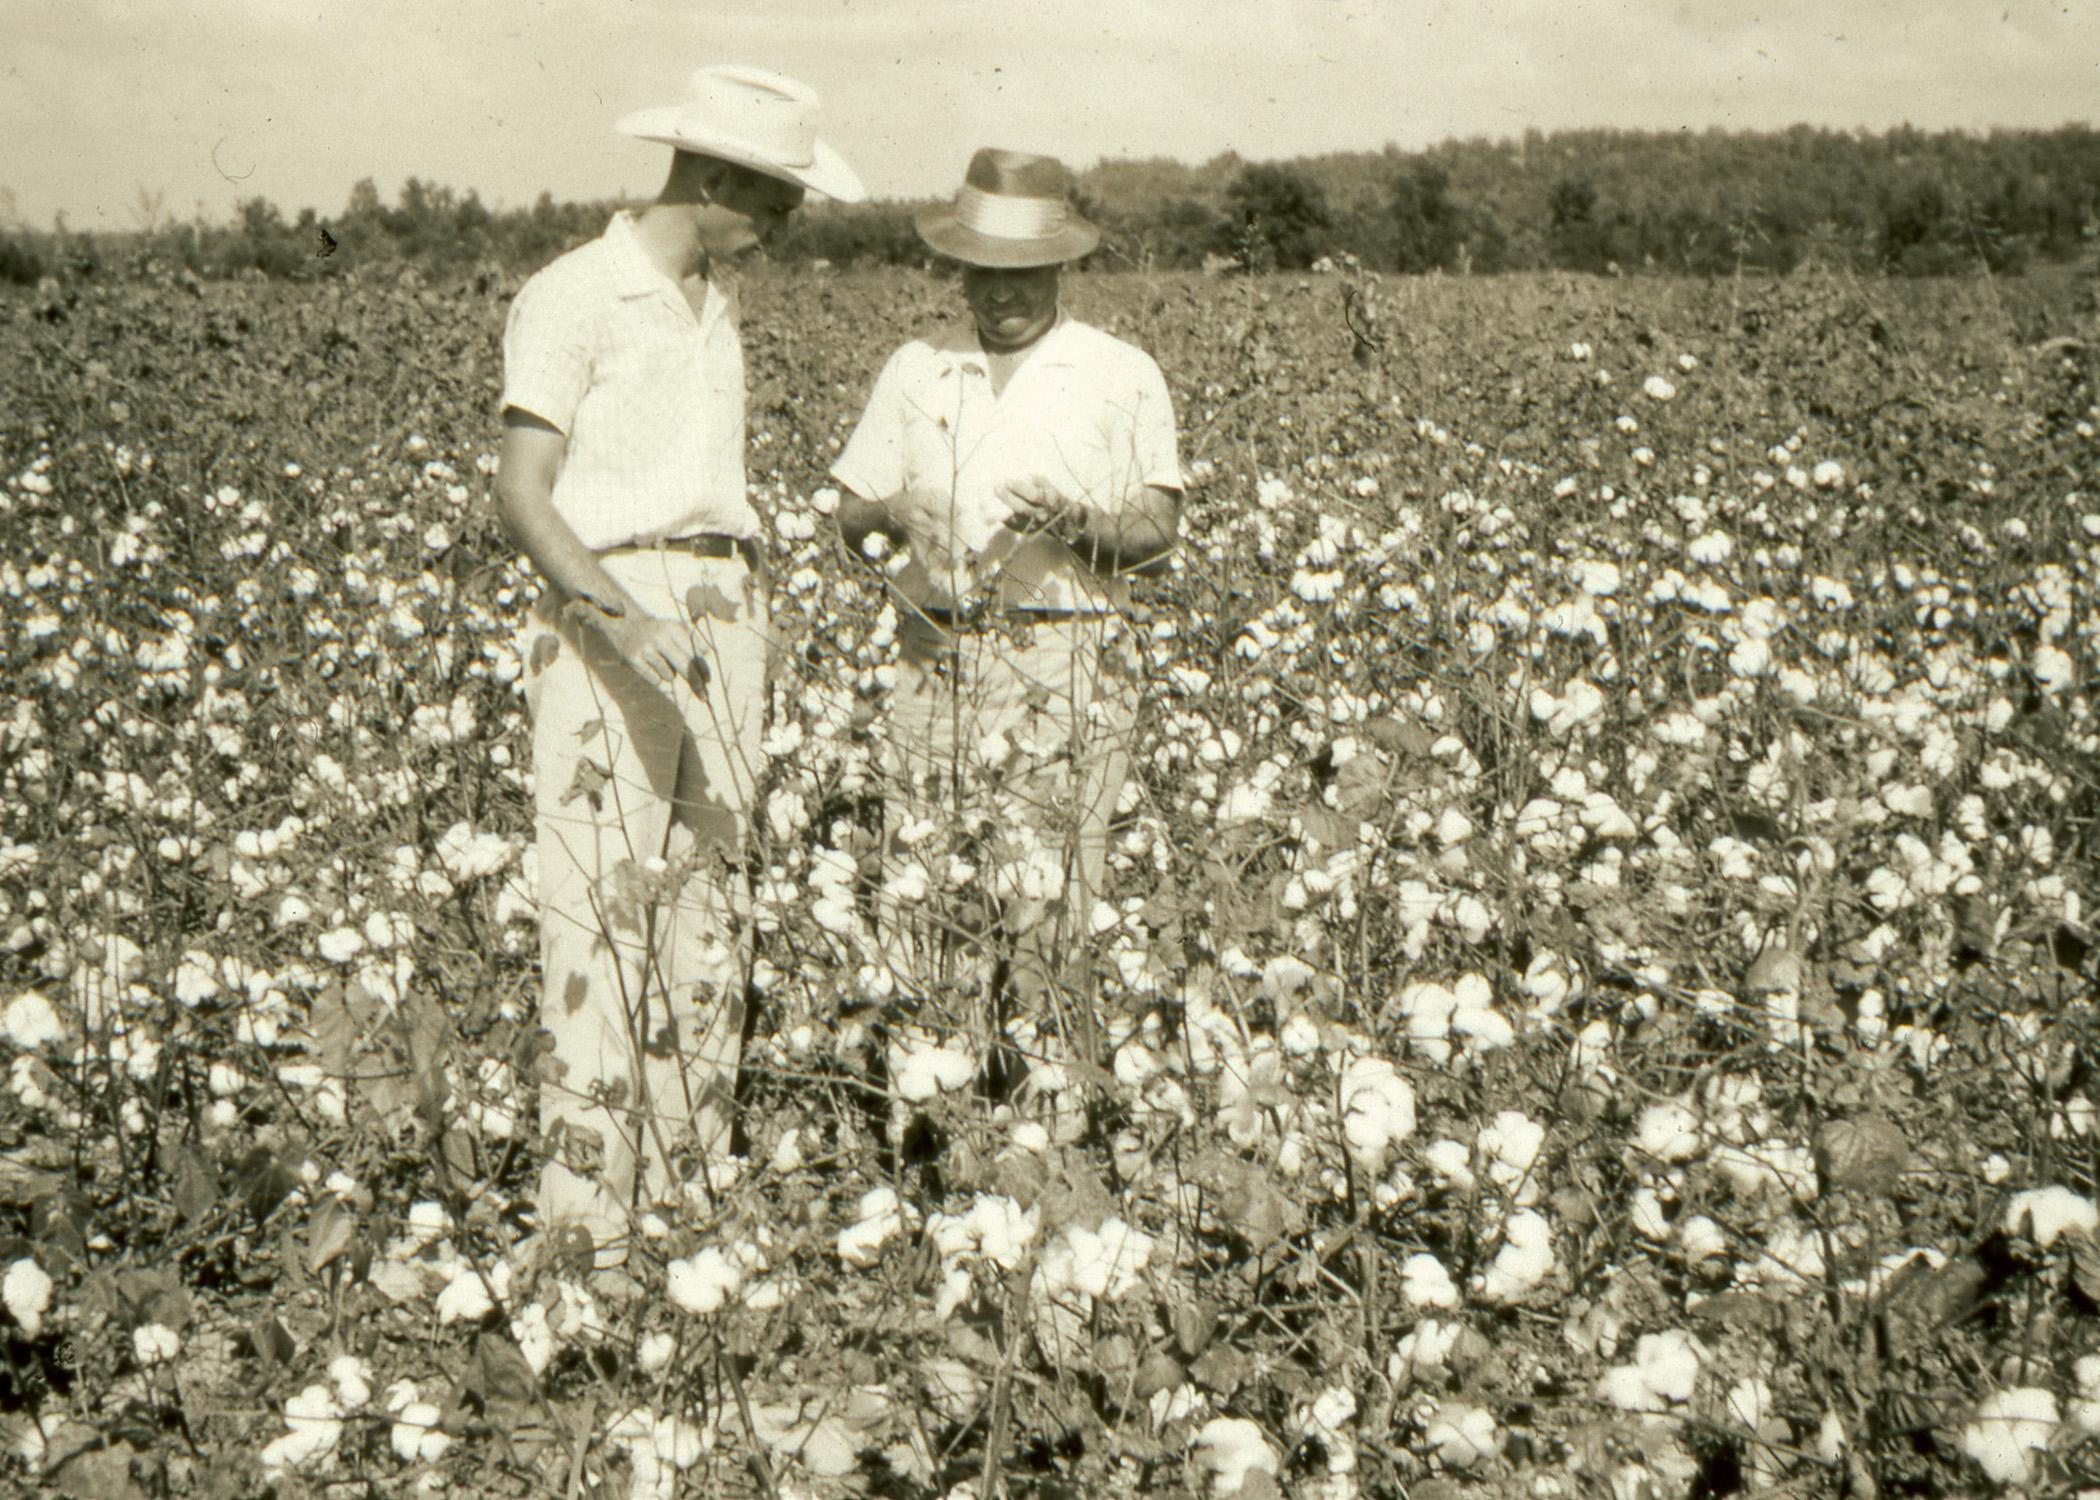 Mississippi State University Extension Service agents spent many hours beside farmers in cotton fields as they waged war against invasive boll weevils, which often robbed plants of their top bolls. Extension personnel helped organize the successful eradication efforts that resulted in Mississippi fields without boll weevil since 2009. (MSU Ag Communications file photo)